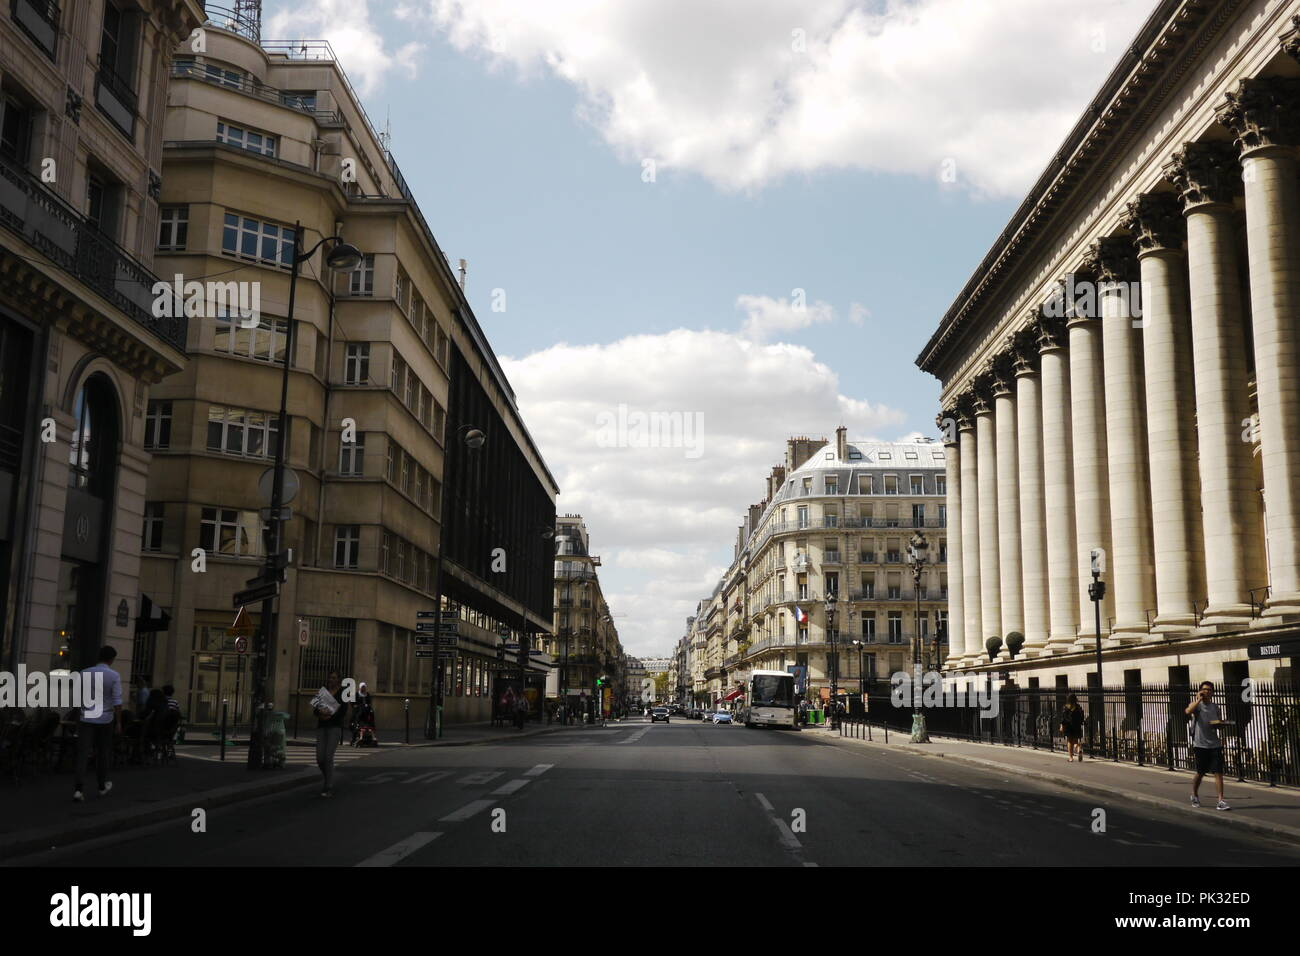 Empty streets in Paris during the summer when most people take a holiday. Kind of surreal. - Stock Image